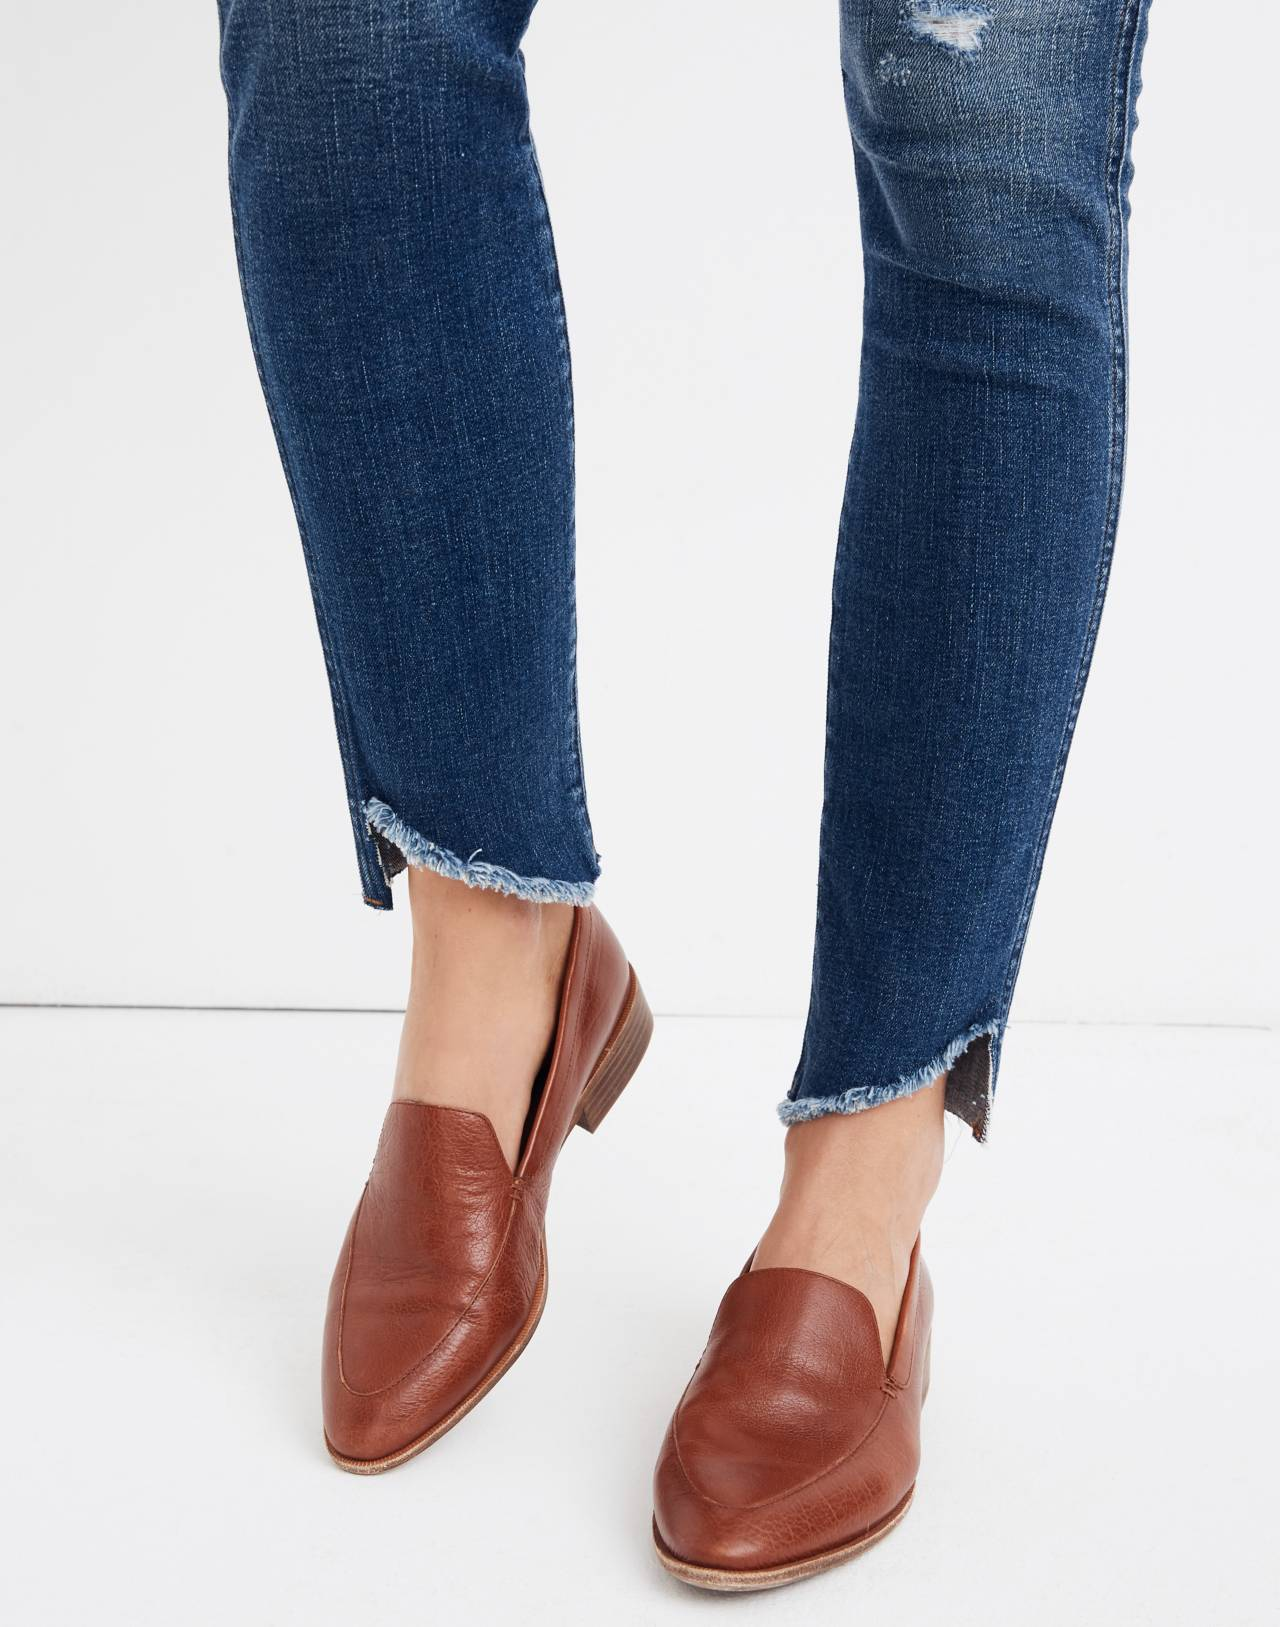 "10"" High-Rise Skinny Jeans: Cutout Tulip Hem Edition in matson wash image 3"